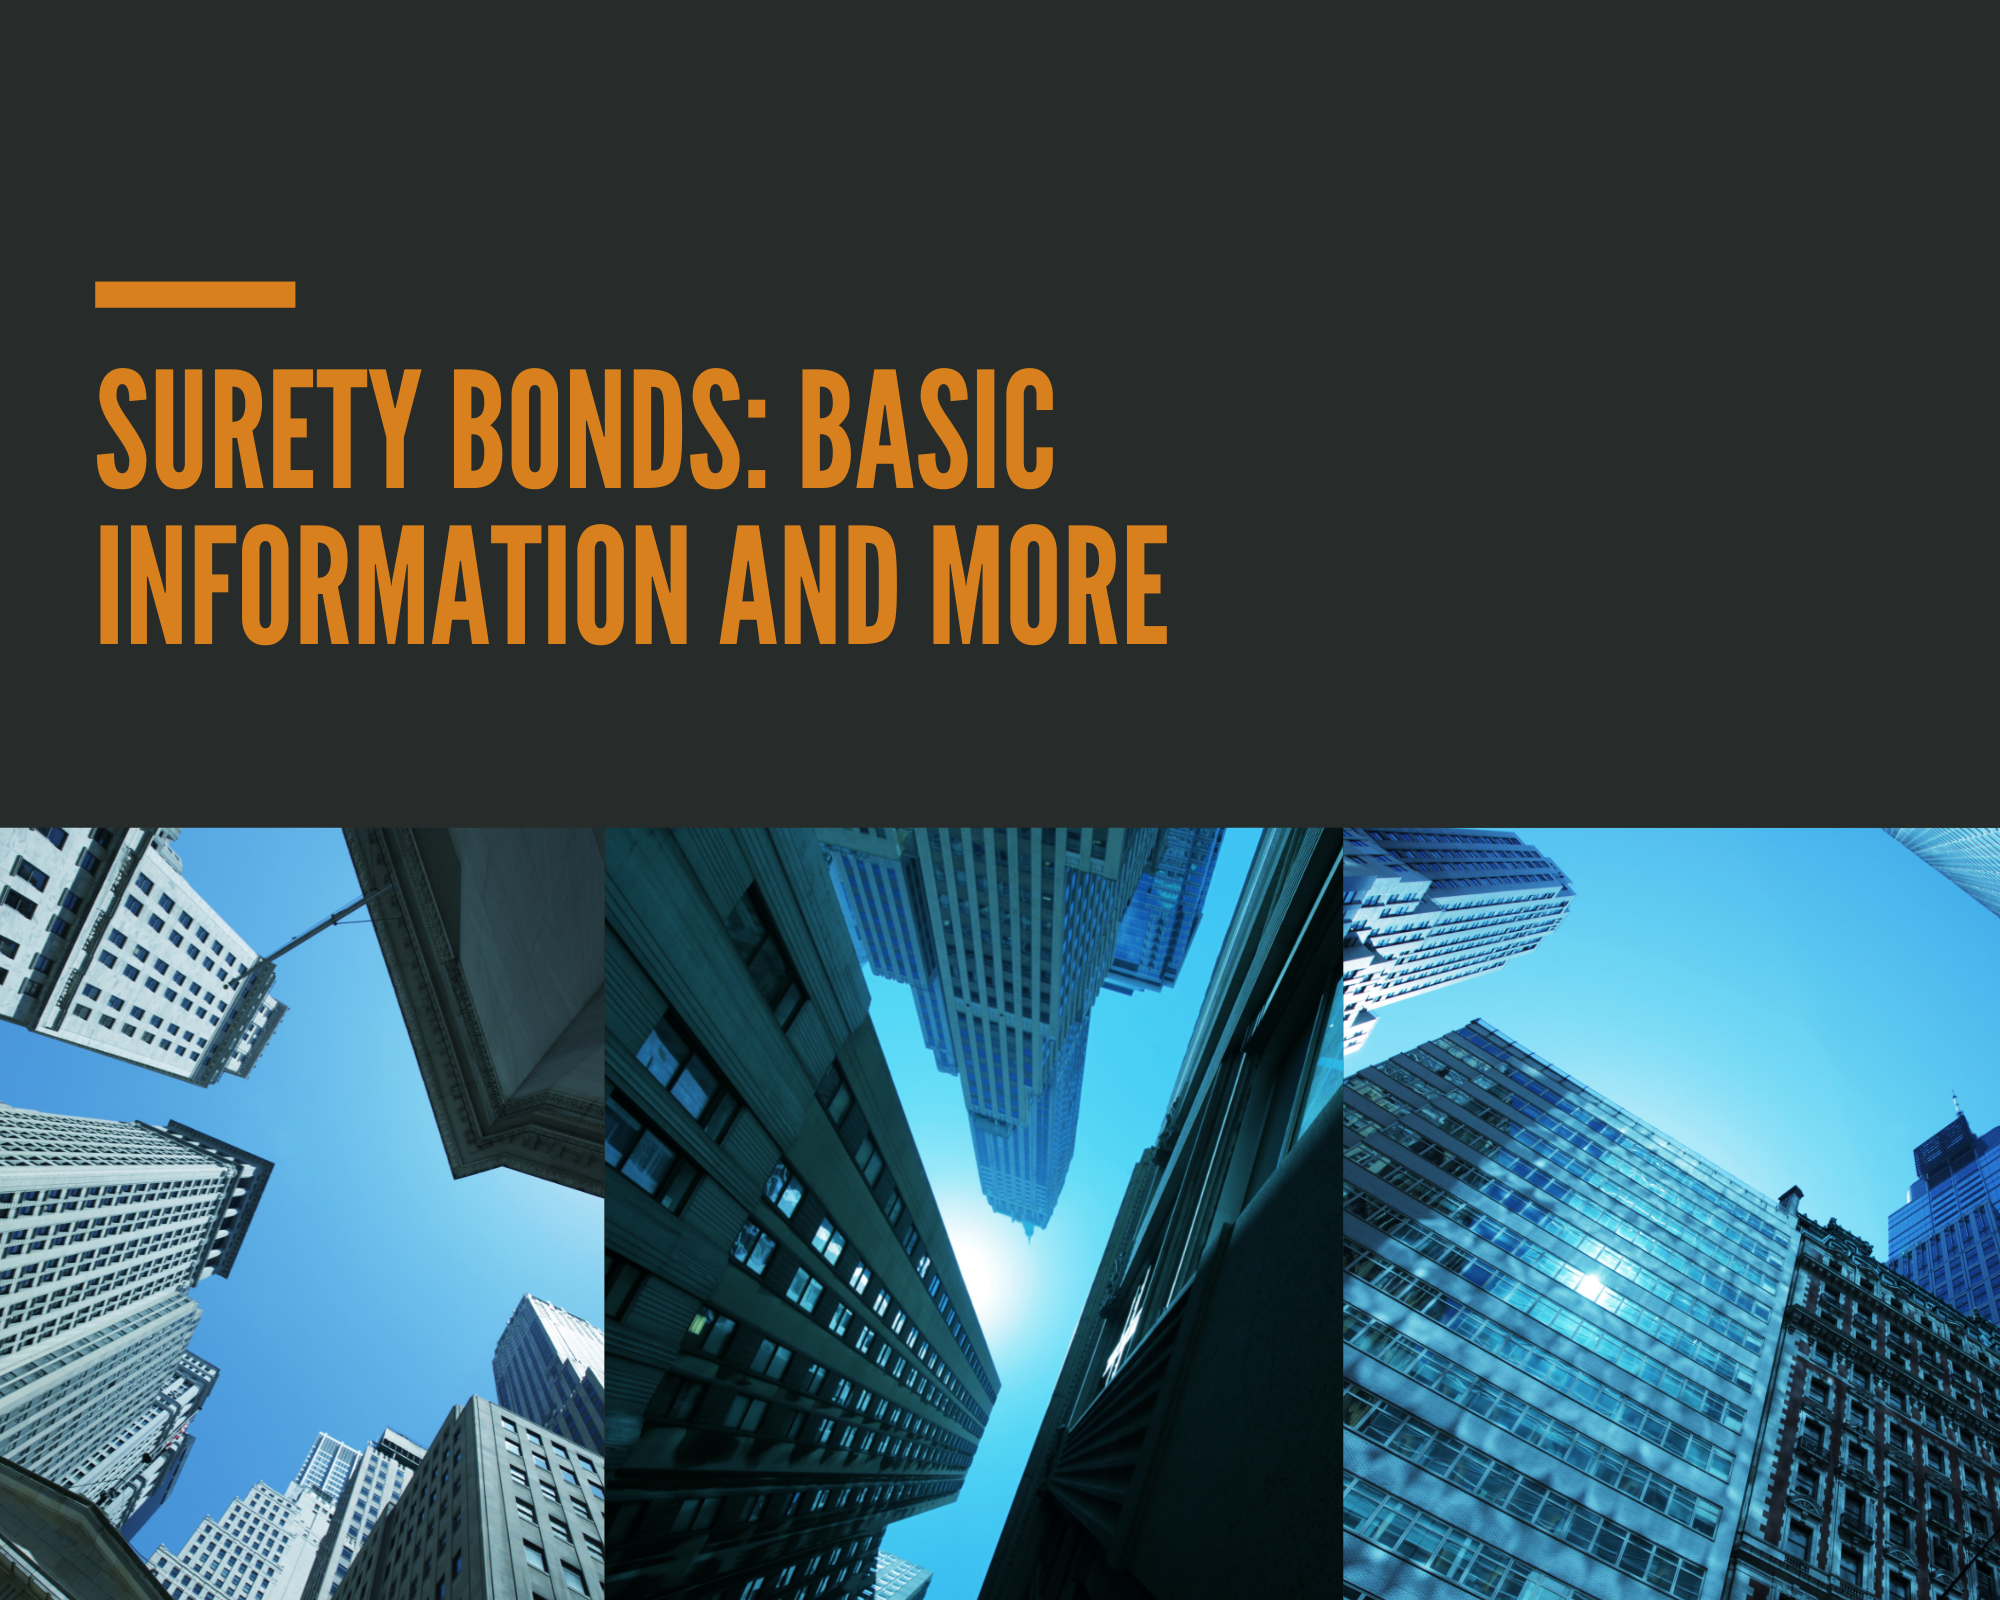 surety bonds - how do I determine if a surety bond is required - buildings in blue background